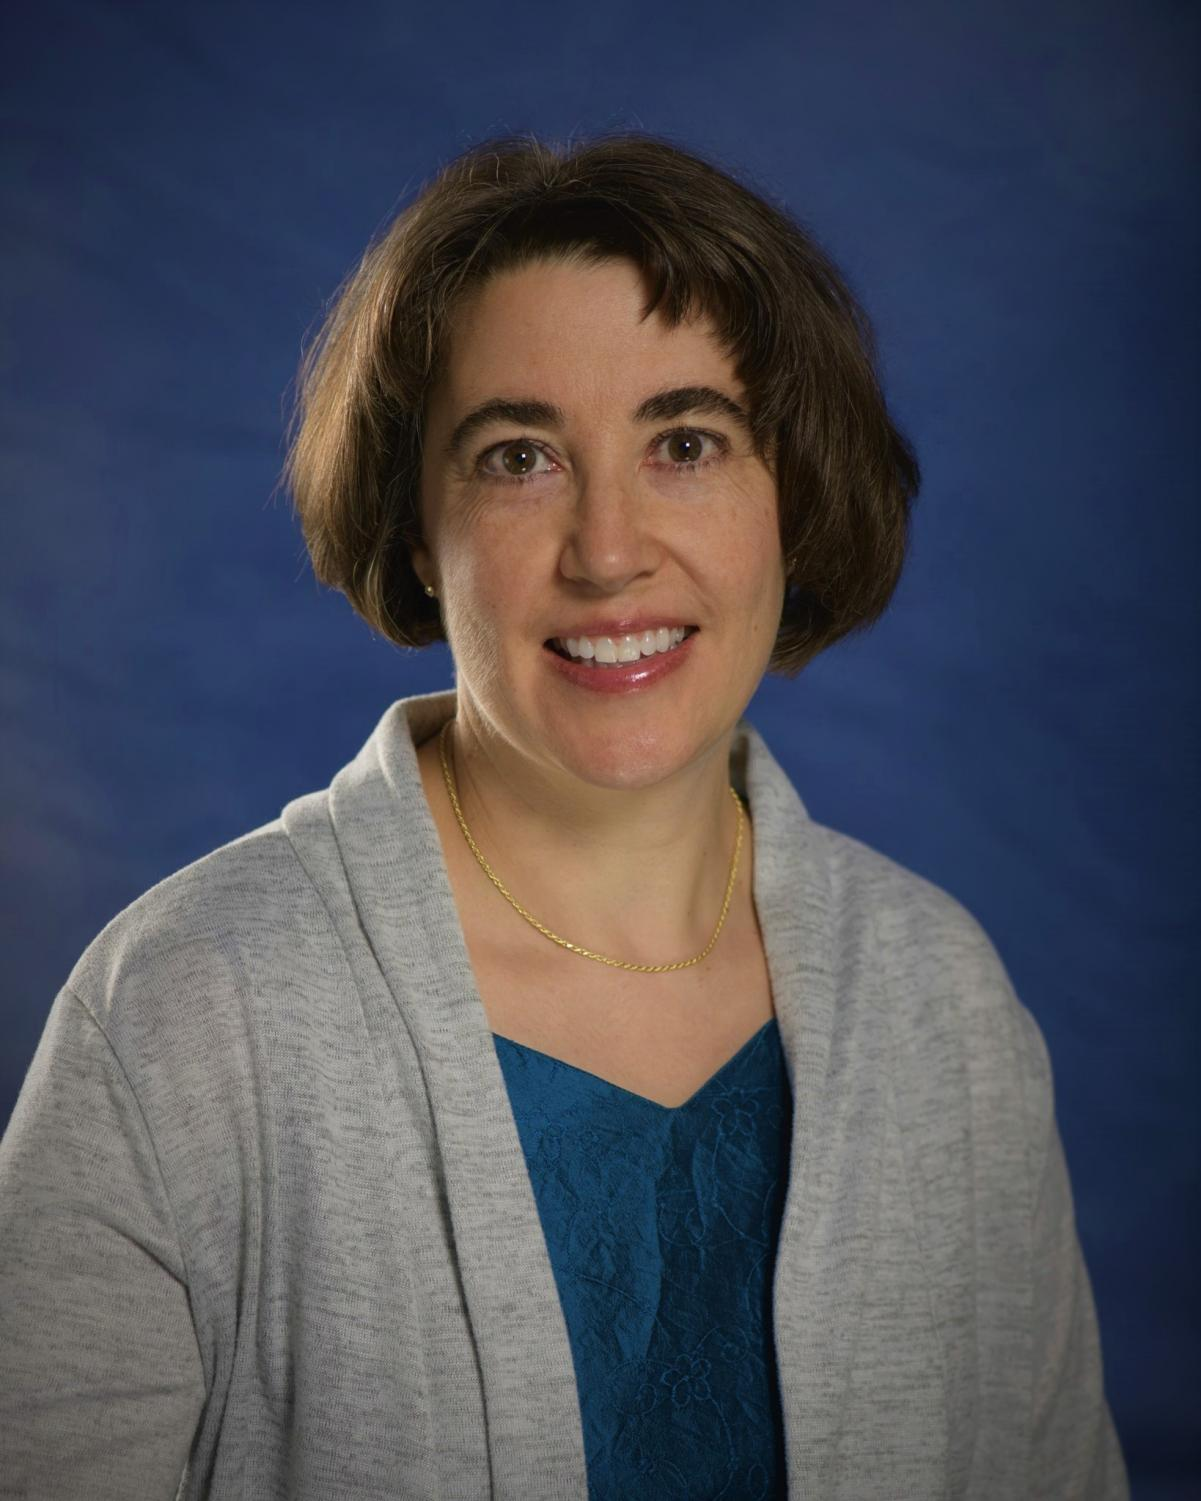 Professor Leanne Knoblock, recipient of the Charles H. Woodbert Research Award.